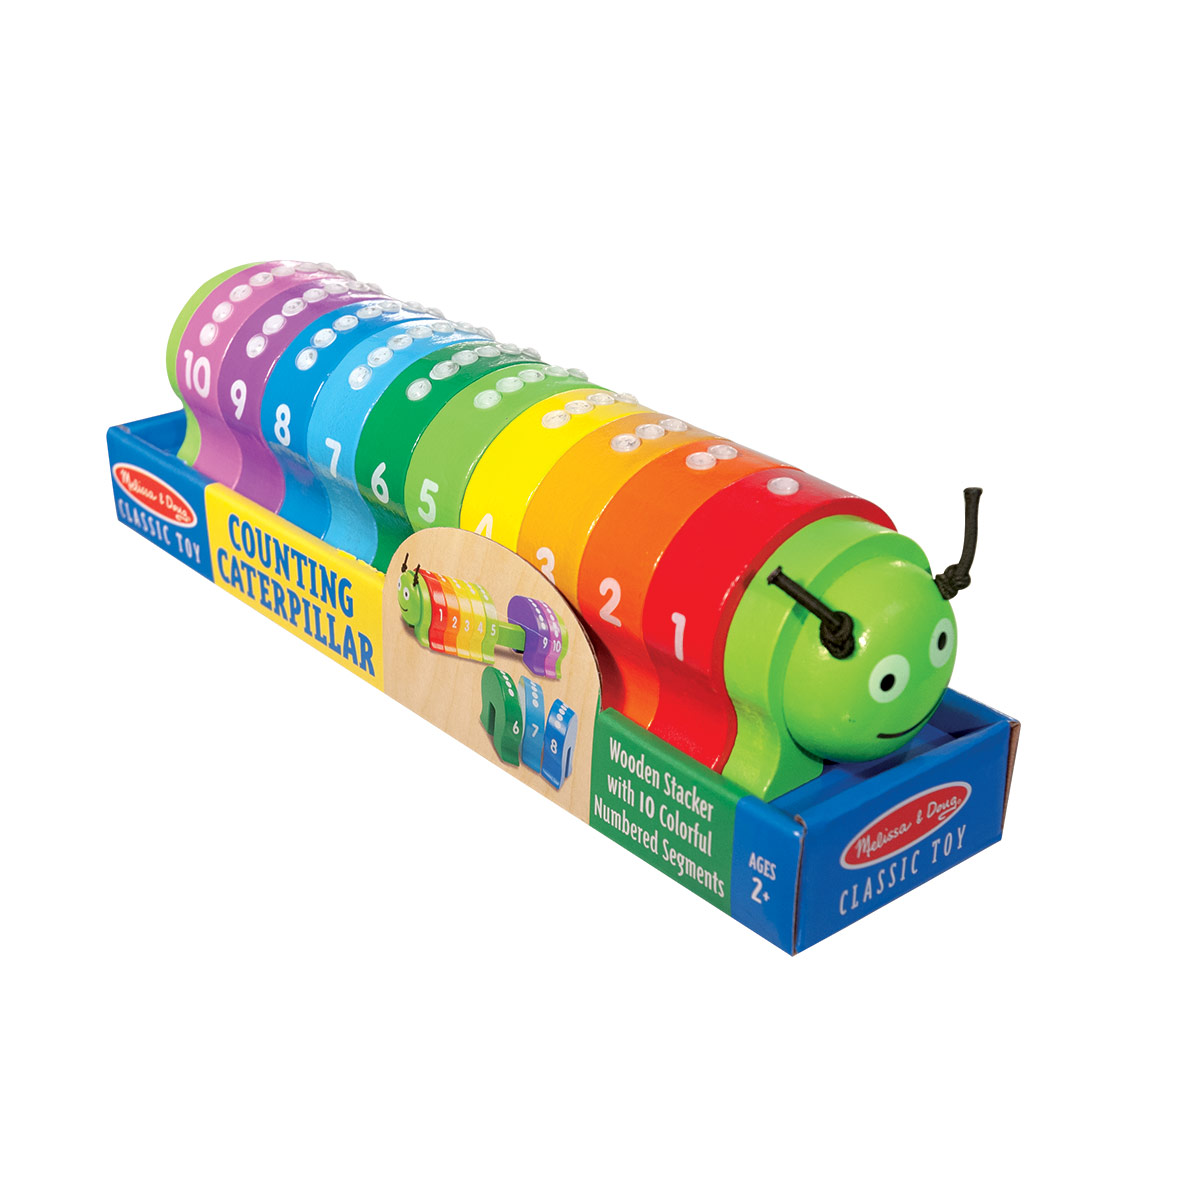 Counting Caterpillar with Braille